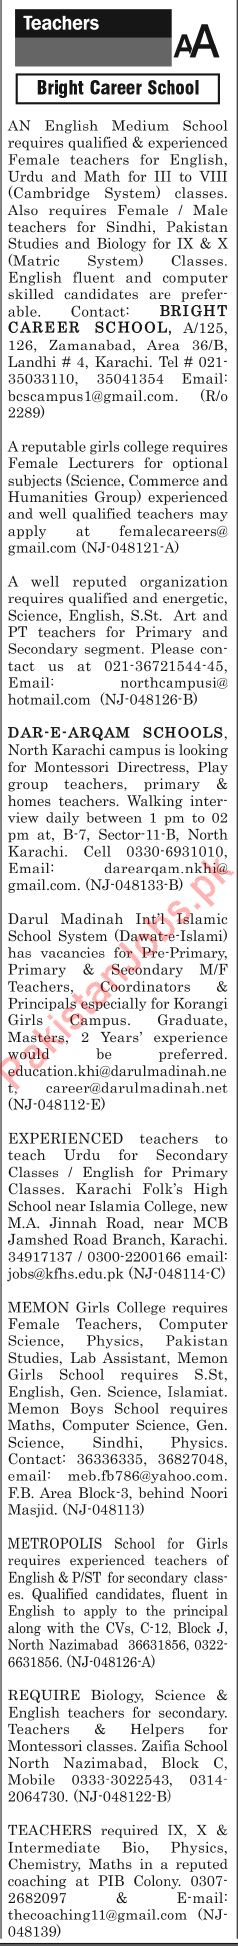 The News Sunday Classified Ads 28th July 2019 for Teaching